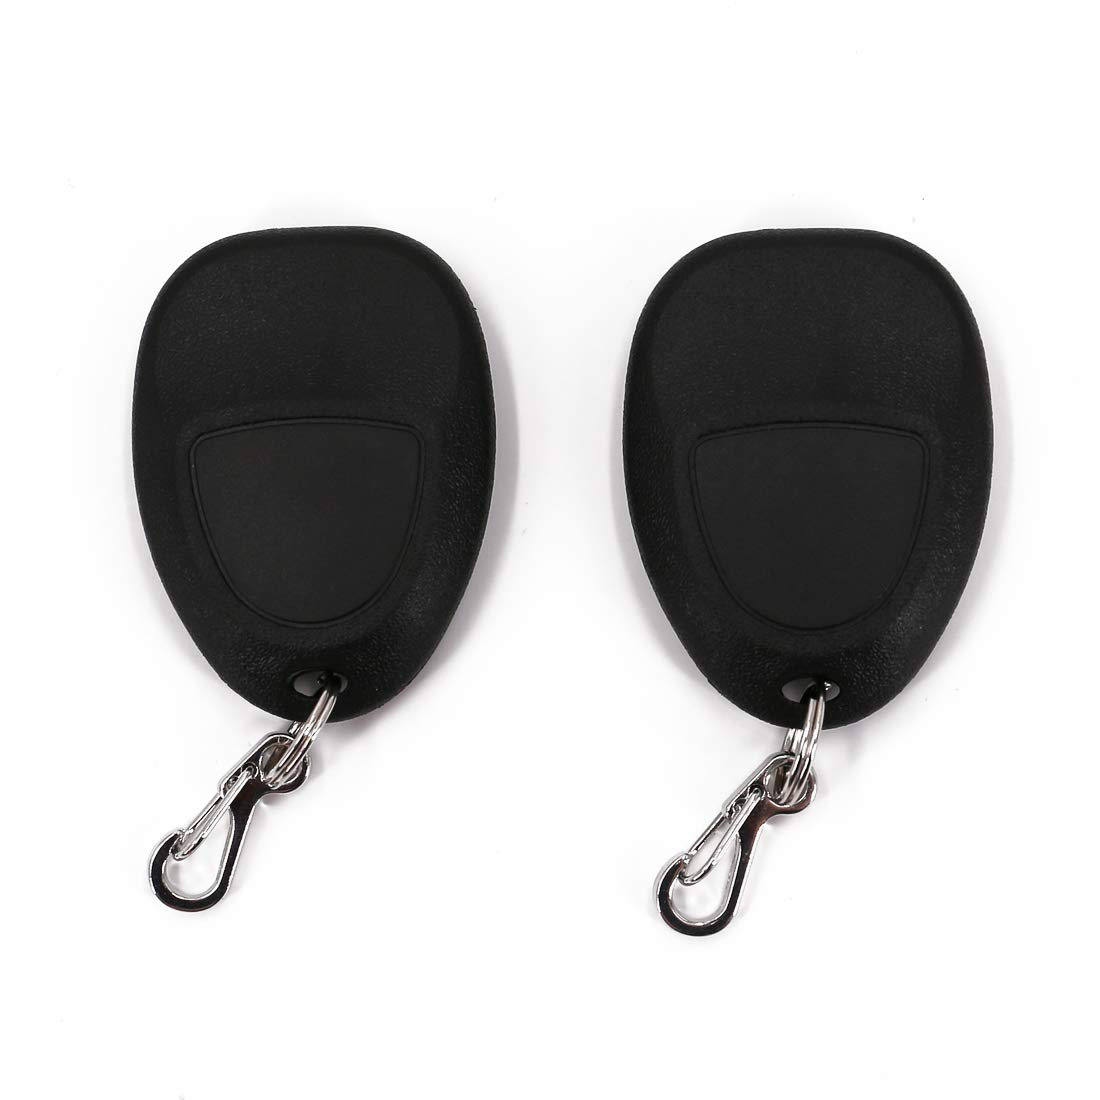 GMC Cadillac UTSAUTO Key Fob Shell Case 2 Pack Keyless Entry Remote Clicker OUC60270 OUC60221 15913420 15913421 4 Button Fits Chevy